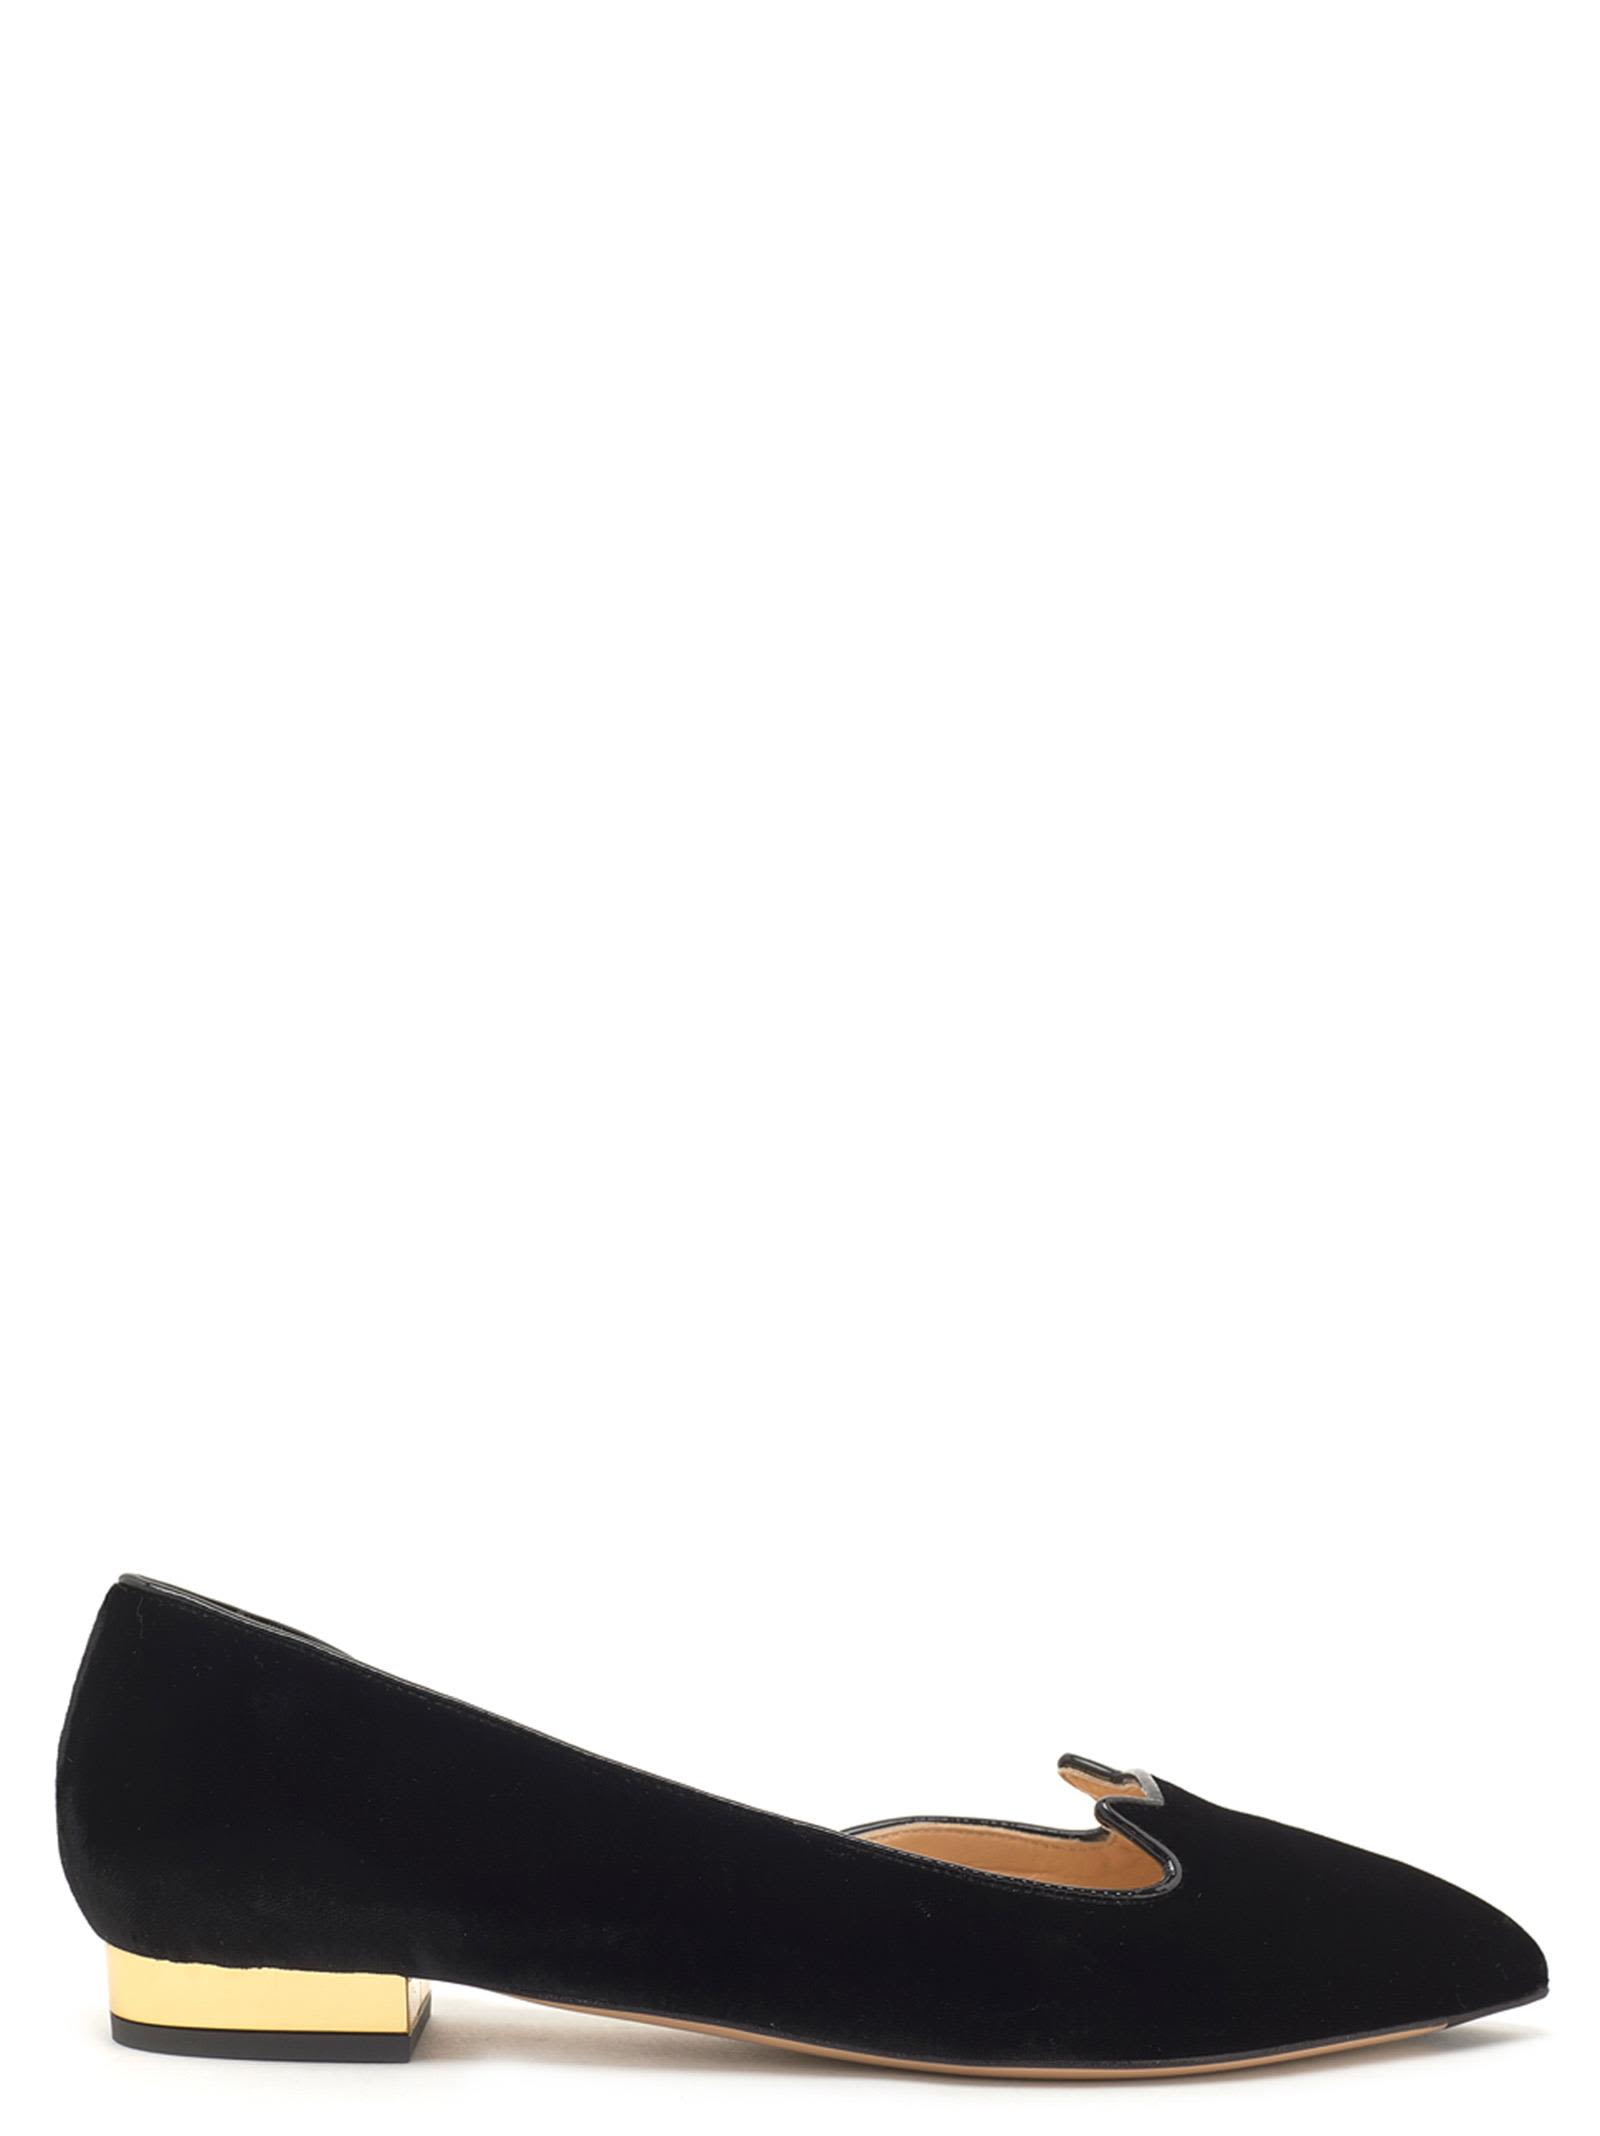 CHARLOTTE OLYMPIA Kitty Shoes, Black